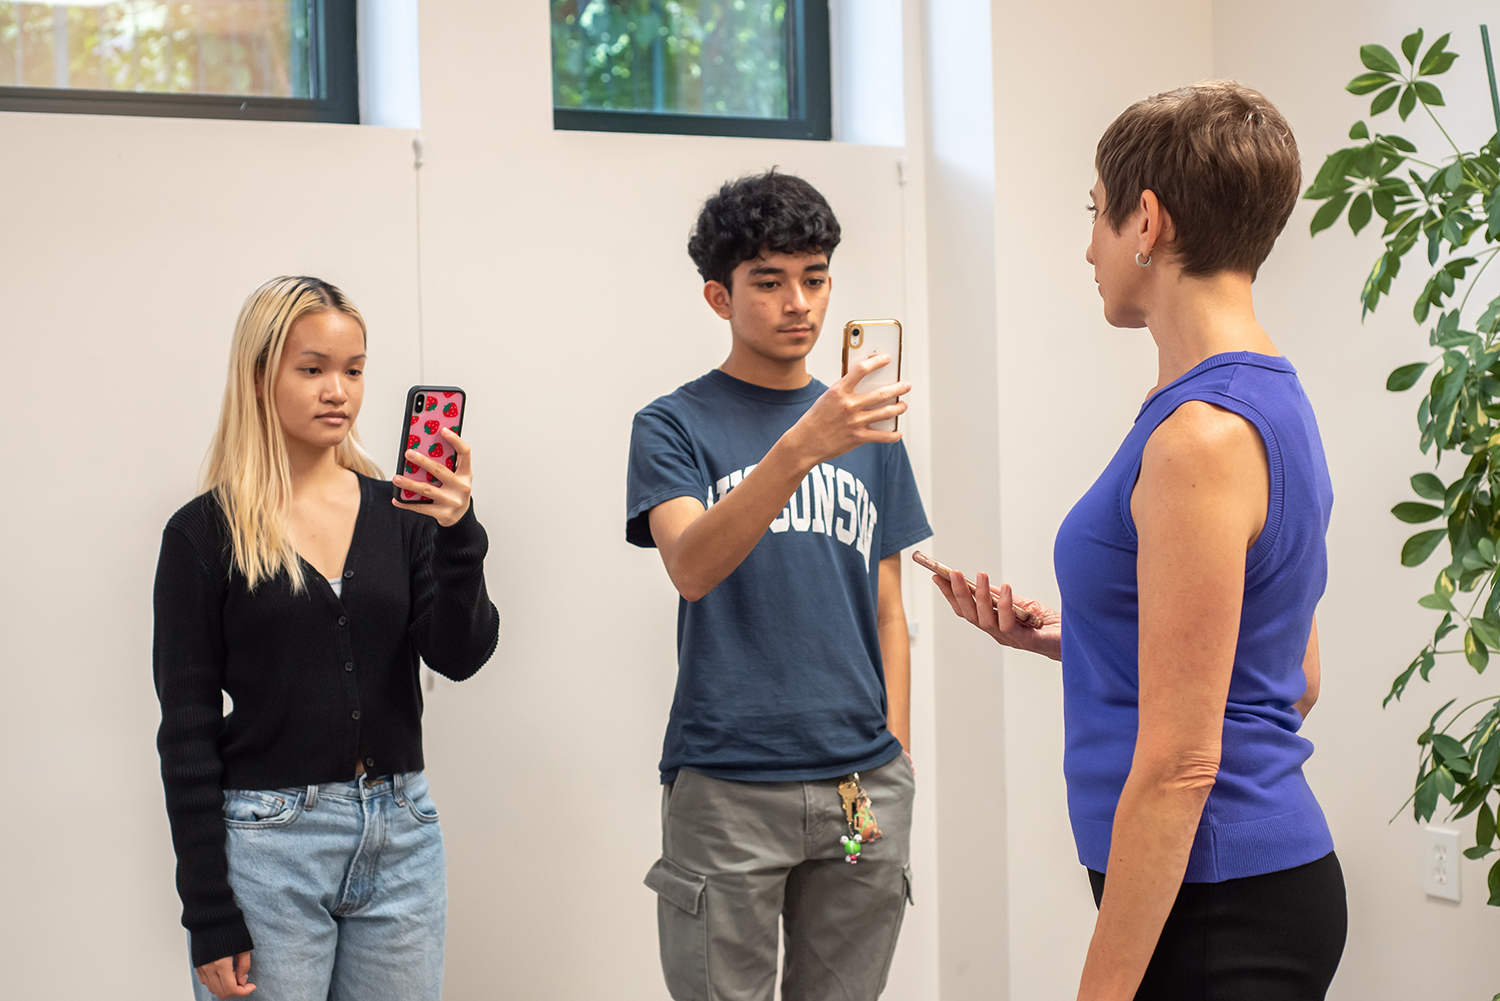 young adult teens with phones in their hands talking to gabrielle